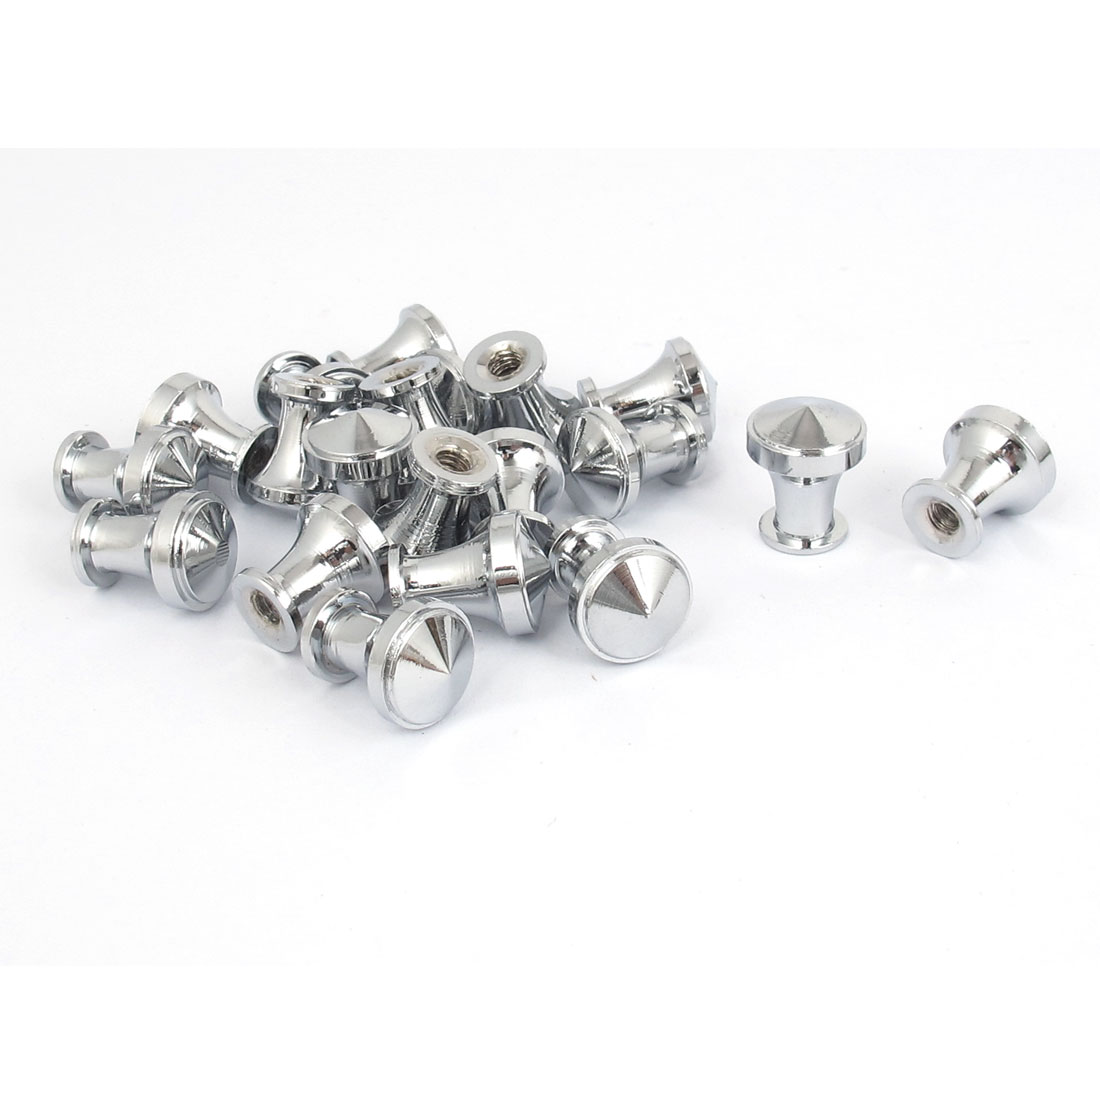 20 Pcs Silver Tone Round Cabinet Dresser Metal Pull Knob Handle Grip 12mm Dia